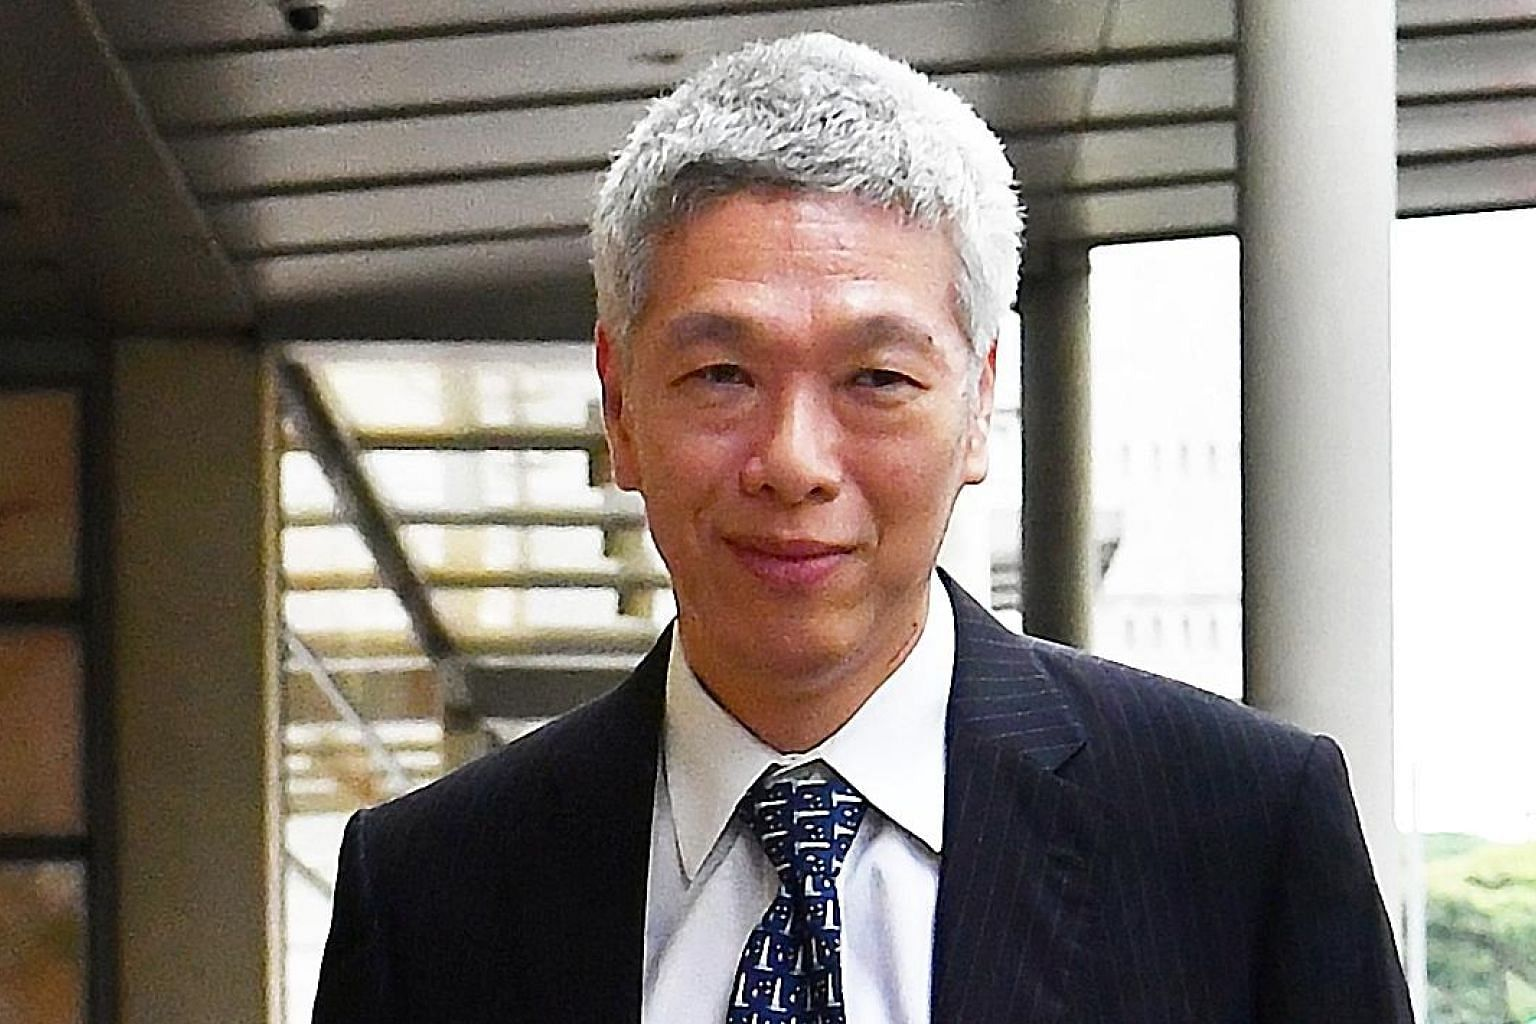 Mr Lee Hsien Yang said he and his sister have not interacted with Deputy Prime Minister Teo Chee Hean in his capacity as the chair of a ministerial committee considering options for the Oxley Road house.